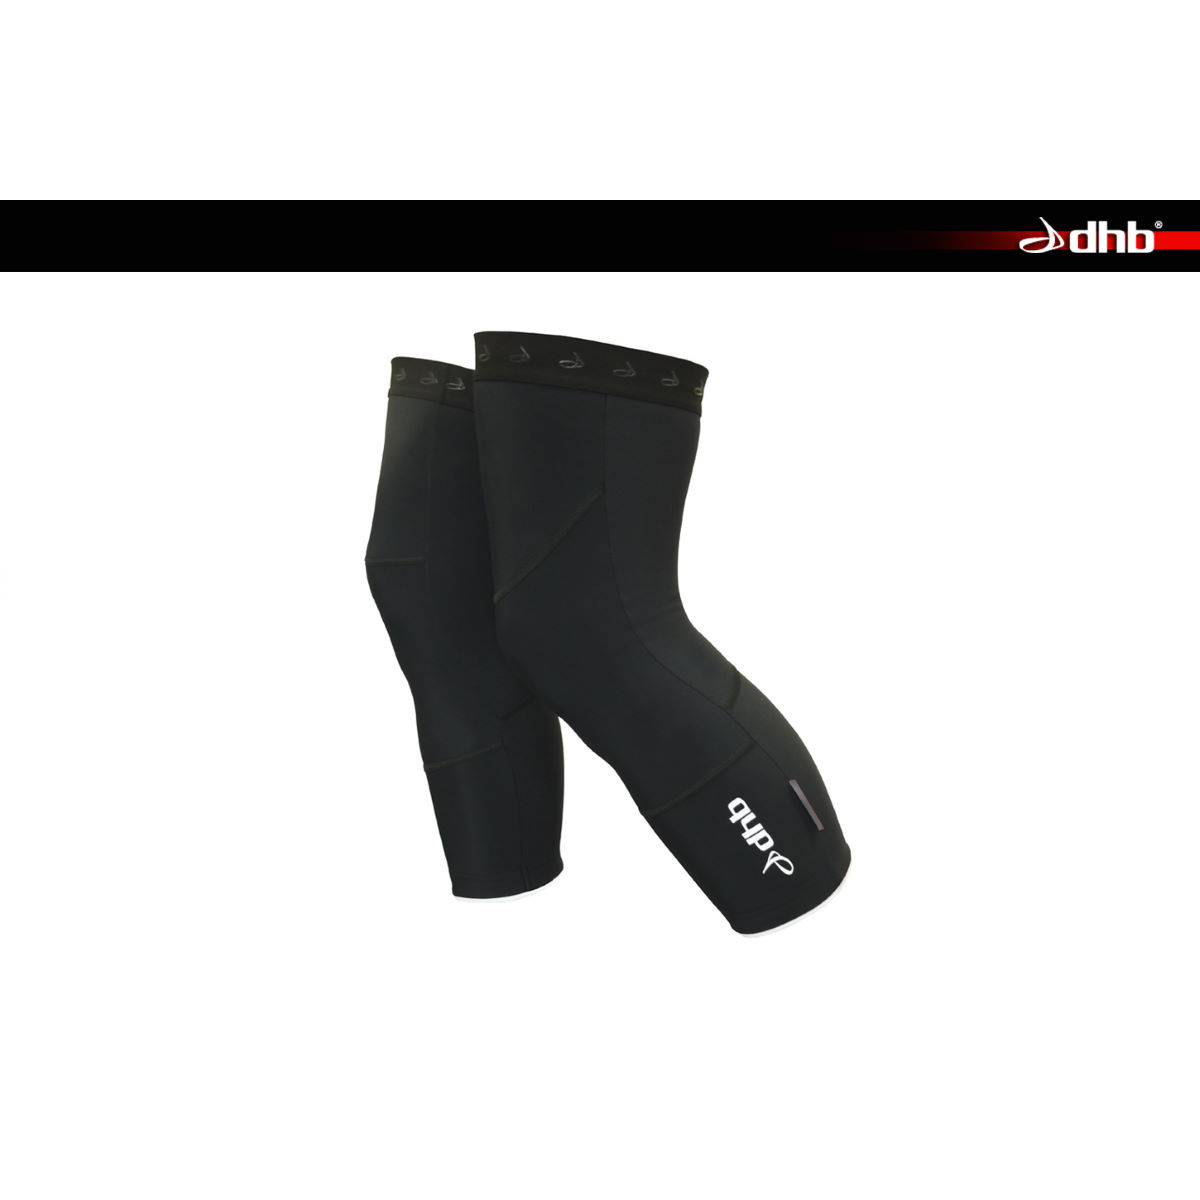 dhb Vaeon Roubaix Knee Warmers